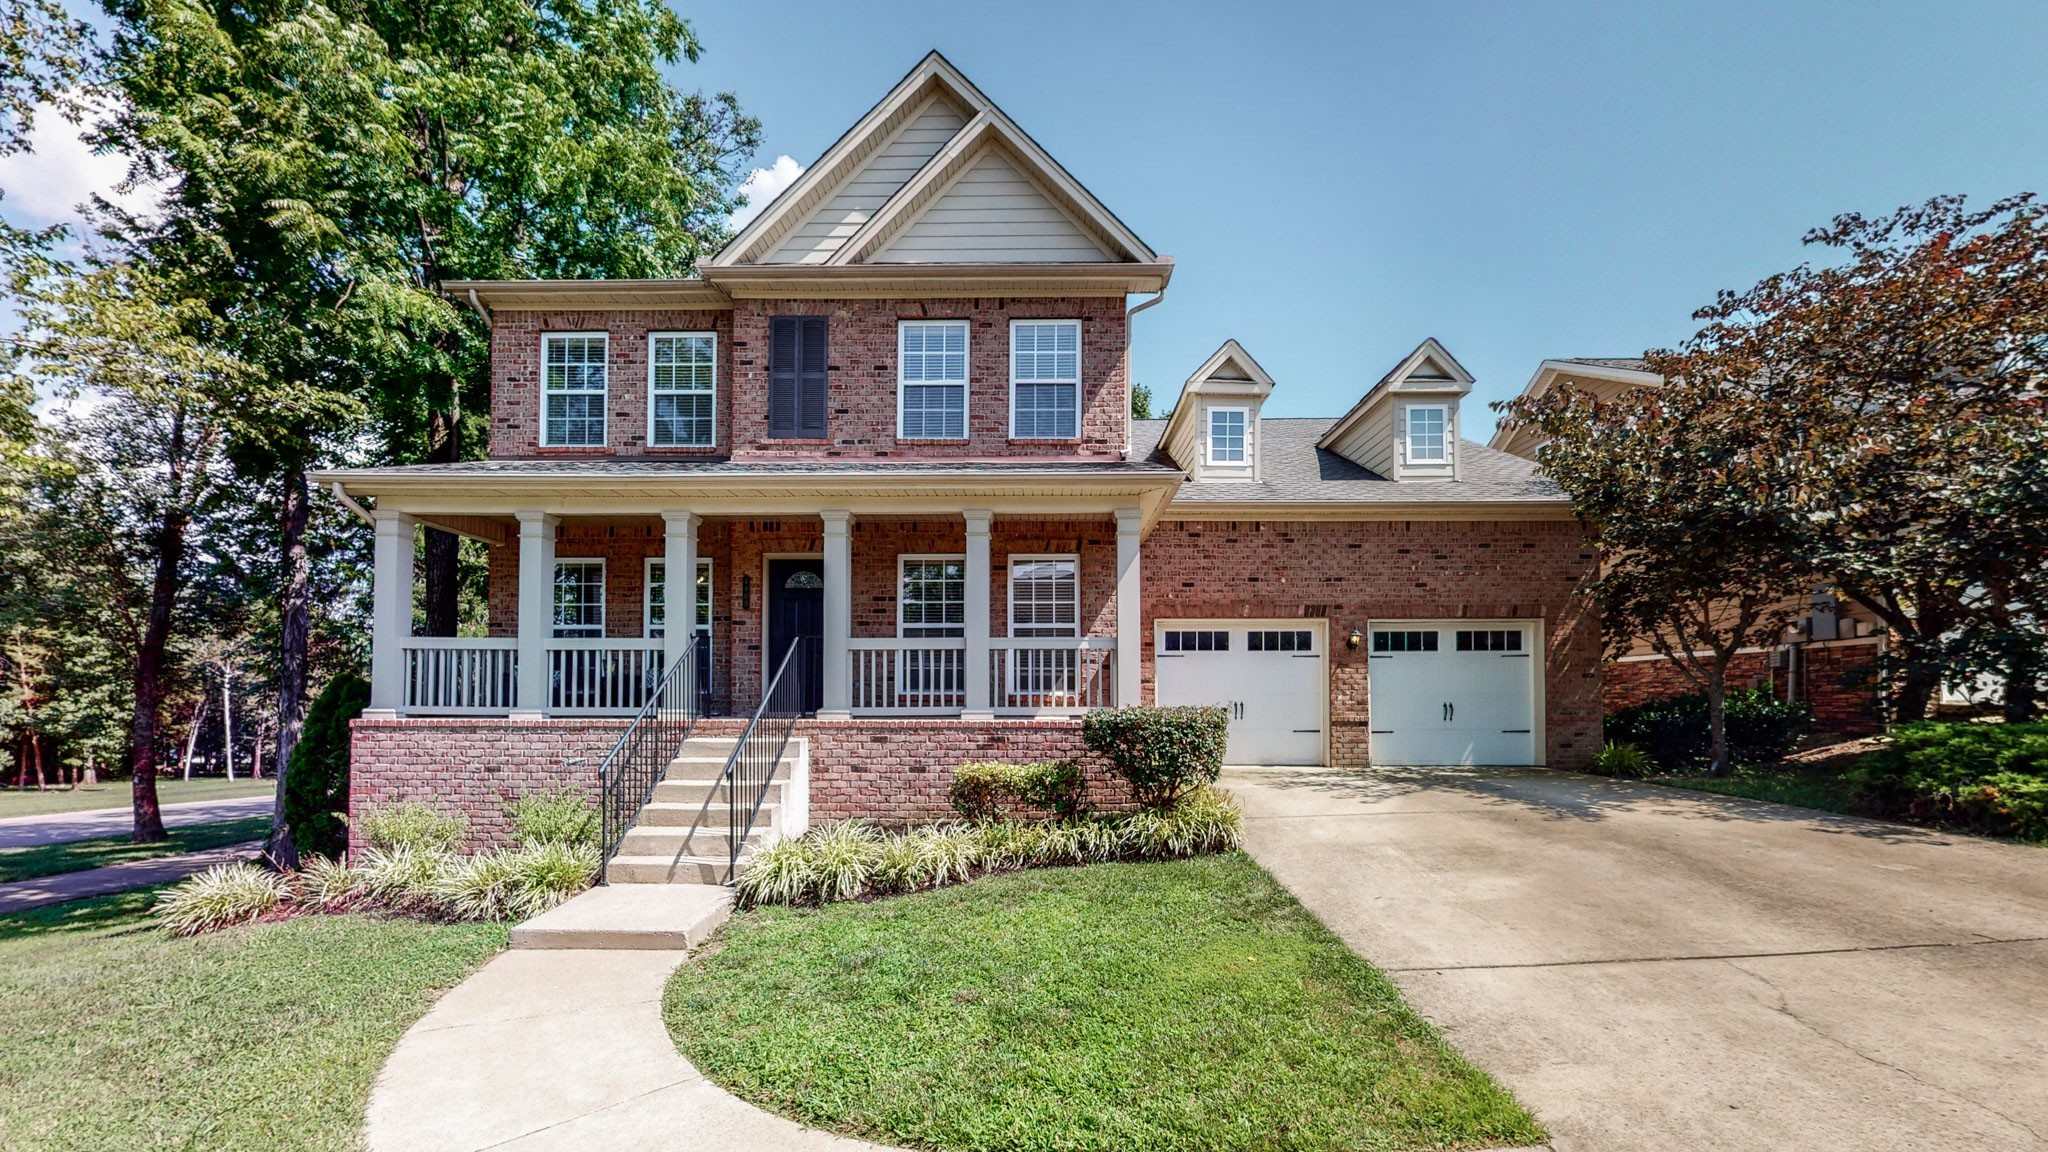 Mature Trees, Fresh Paint, Granite, Hardwoods, Tile in wet areas, Newer carpet, Irrigation System, Oversized garage, Community Pool, pavilion, parks, multiple walking trails and playgrounds.